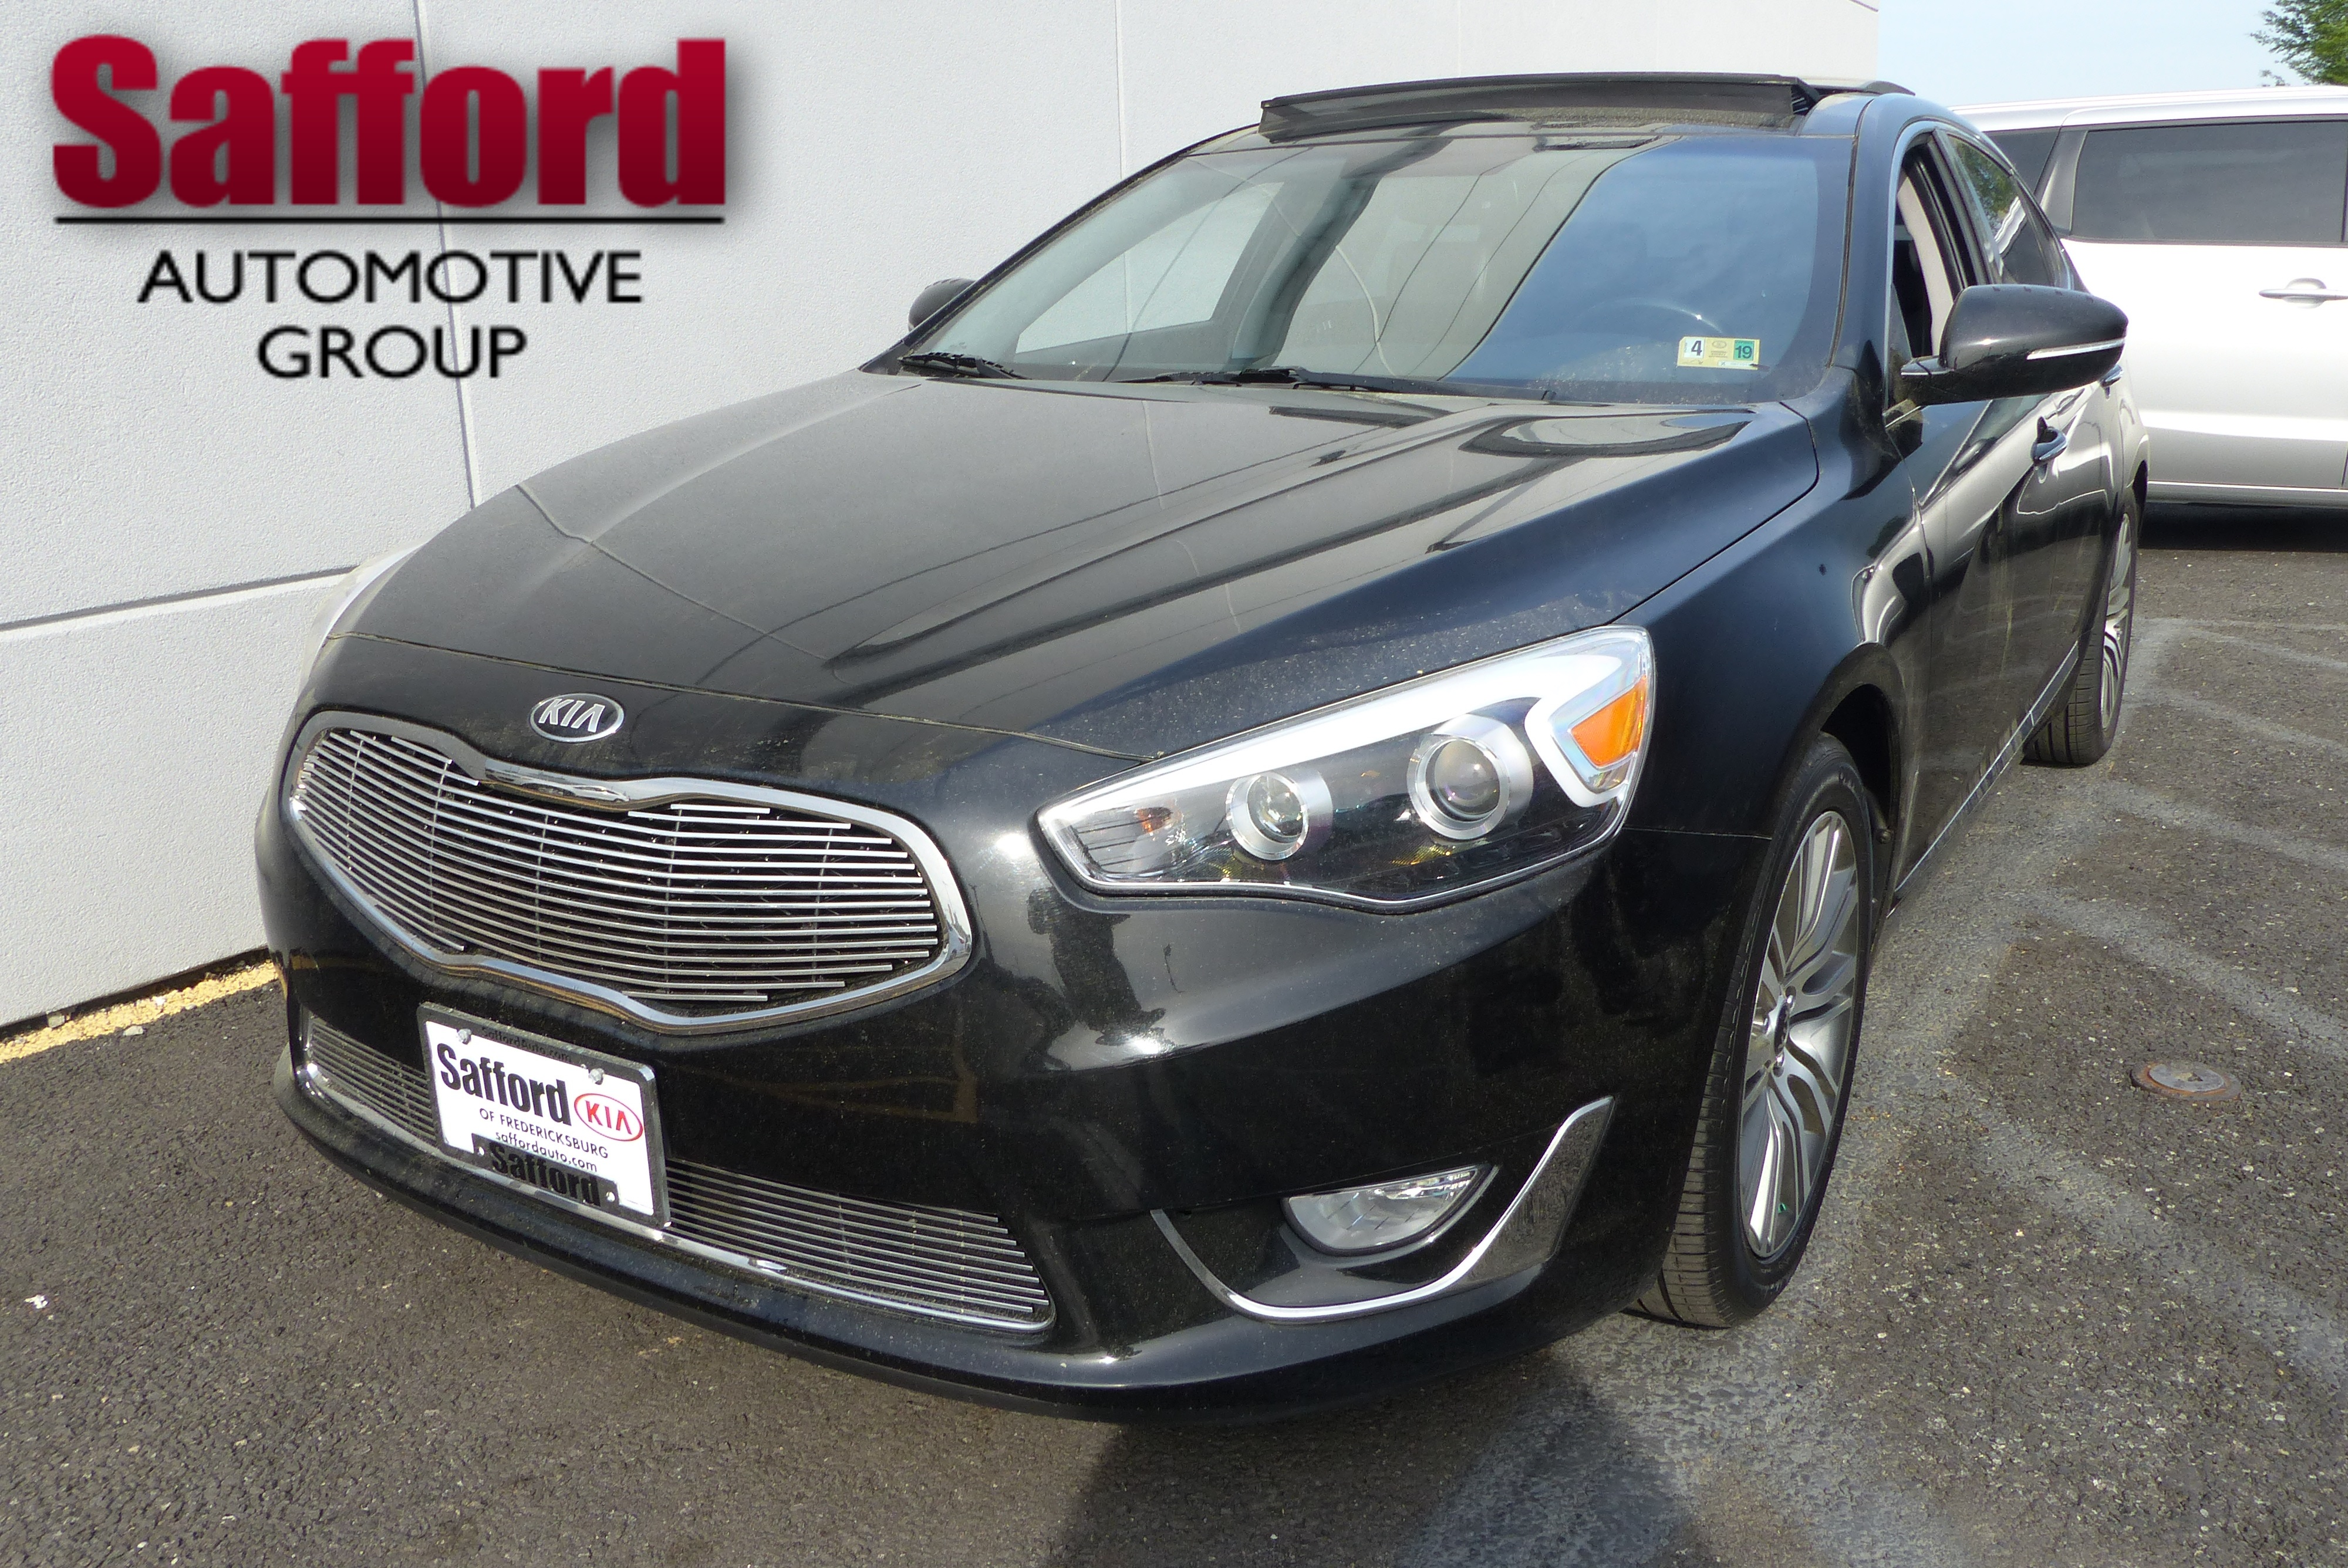 81c7f00c6955ee3e7073c25da07a9e1f Cool Review About 2017 Kia Cadenza Release Date